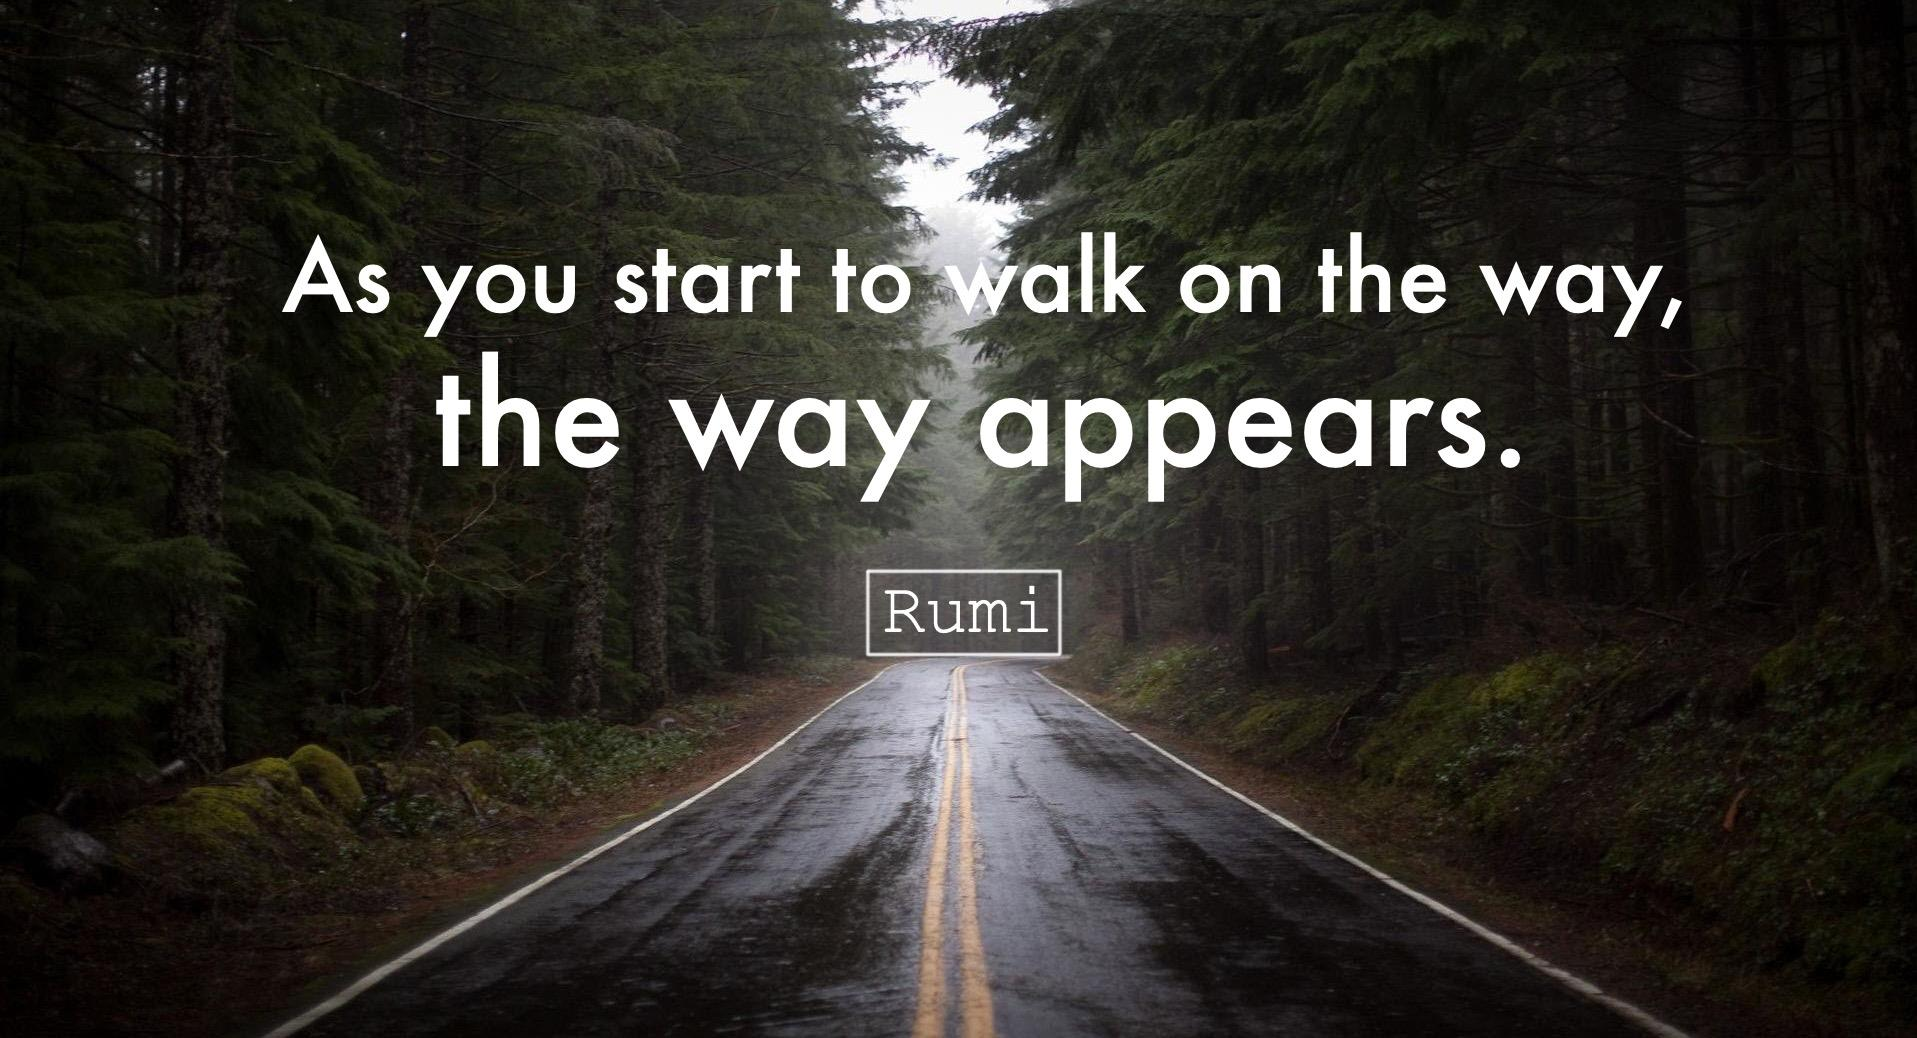 """As you start to walk on the way, the way appears."" -Rumi (1917×1038)"